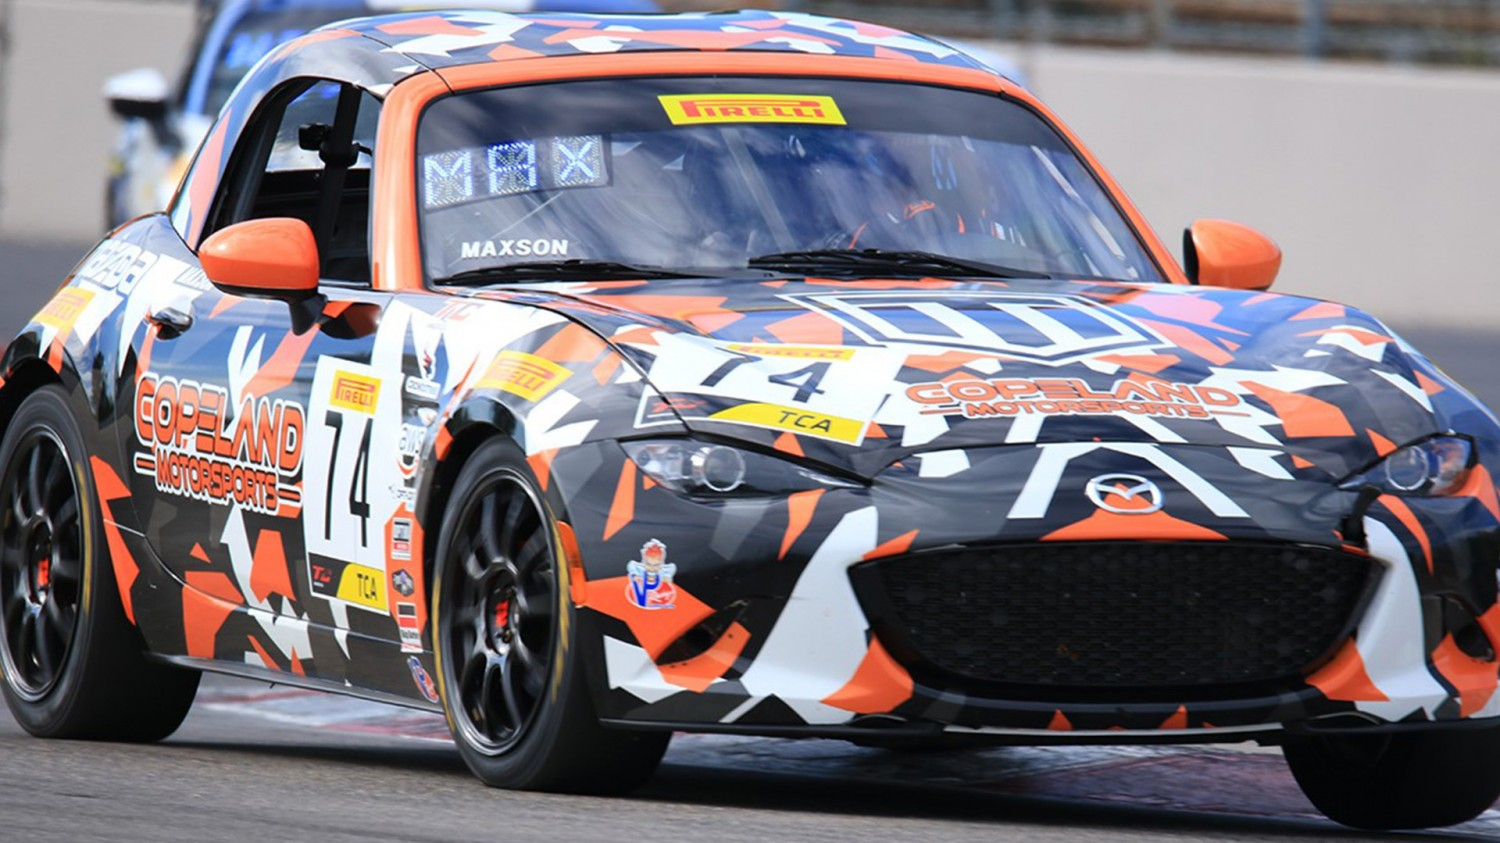 Sitting Second in Points, Tyler Maxson Aims for the Top at Watkins Glen